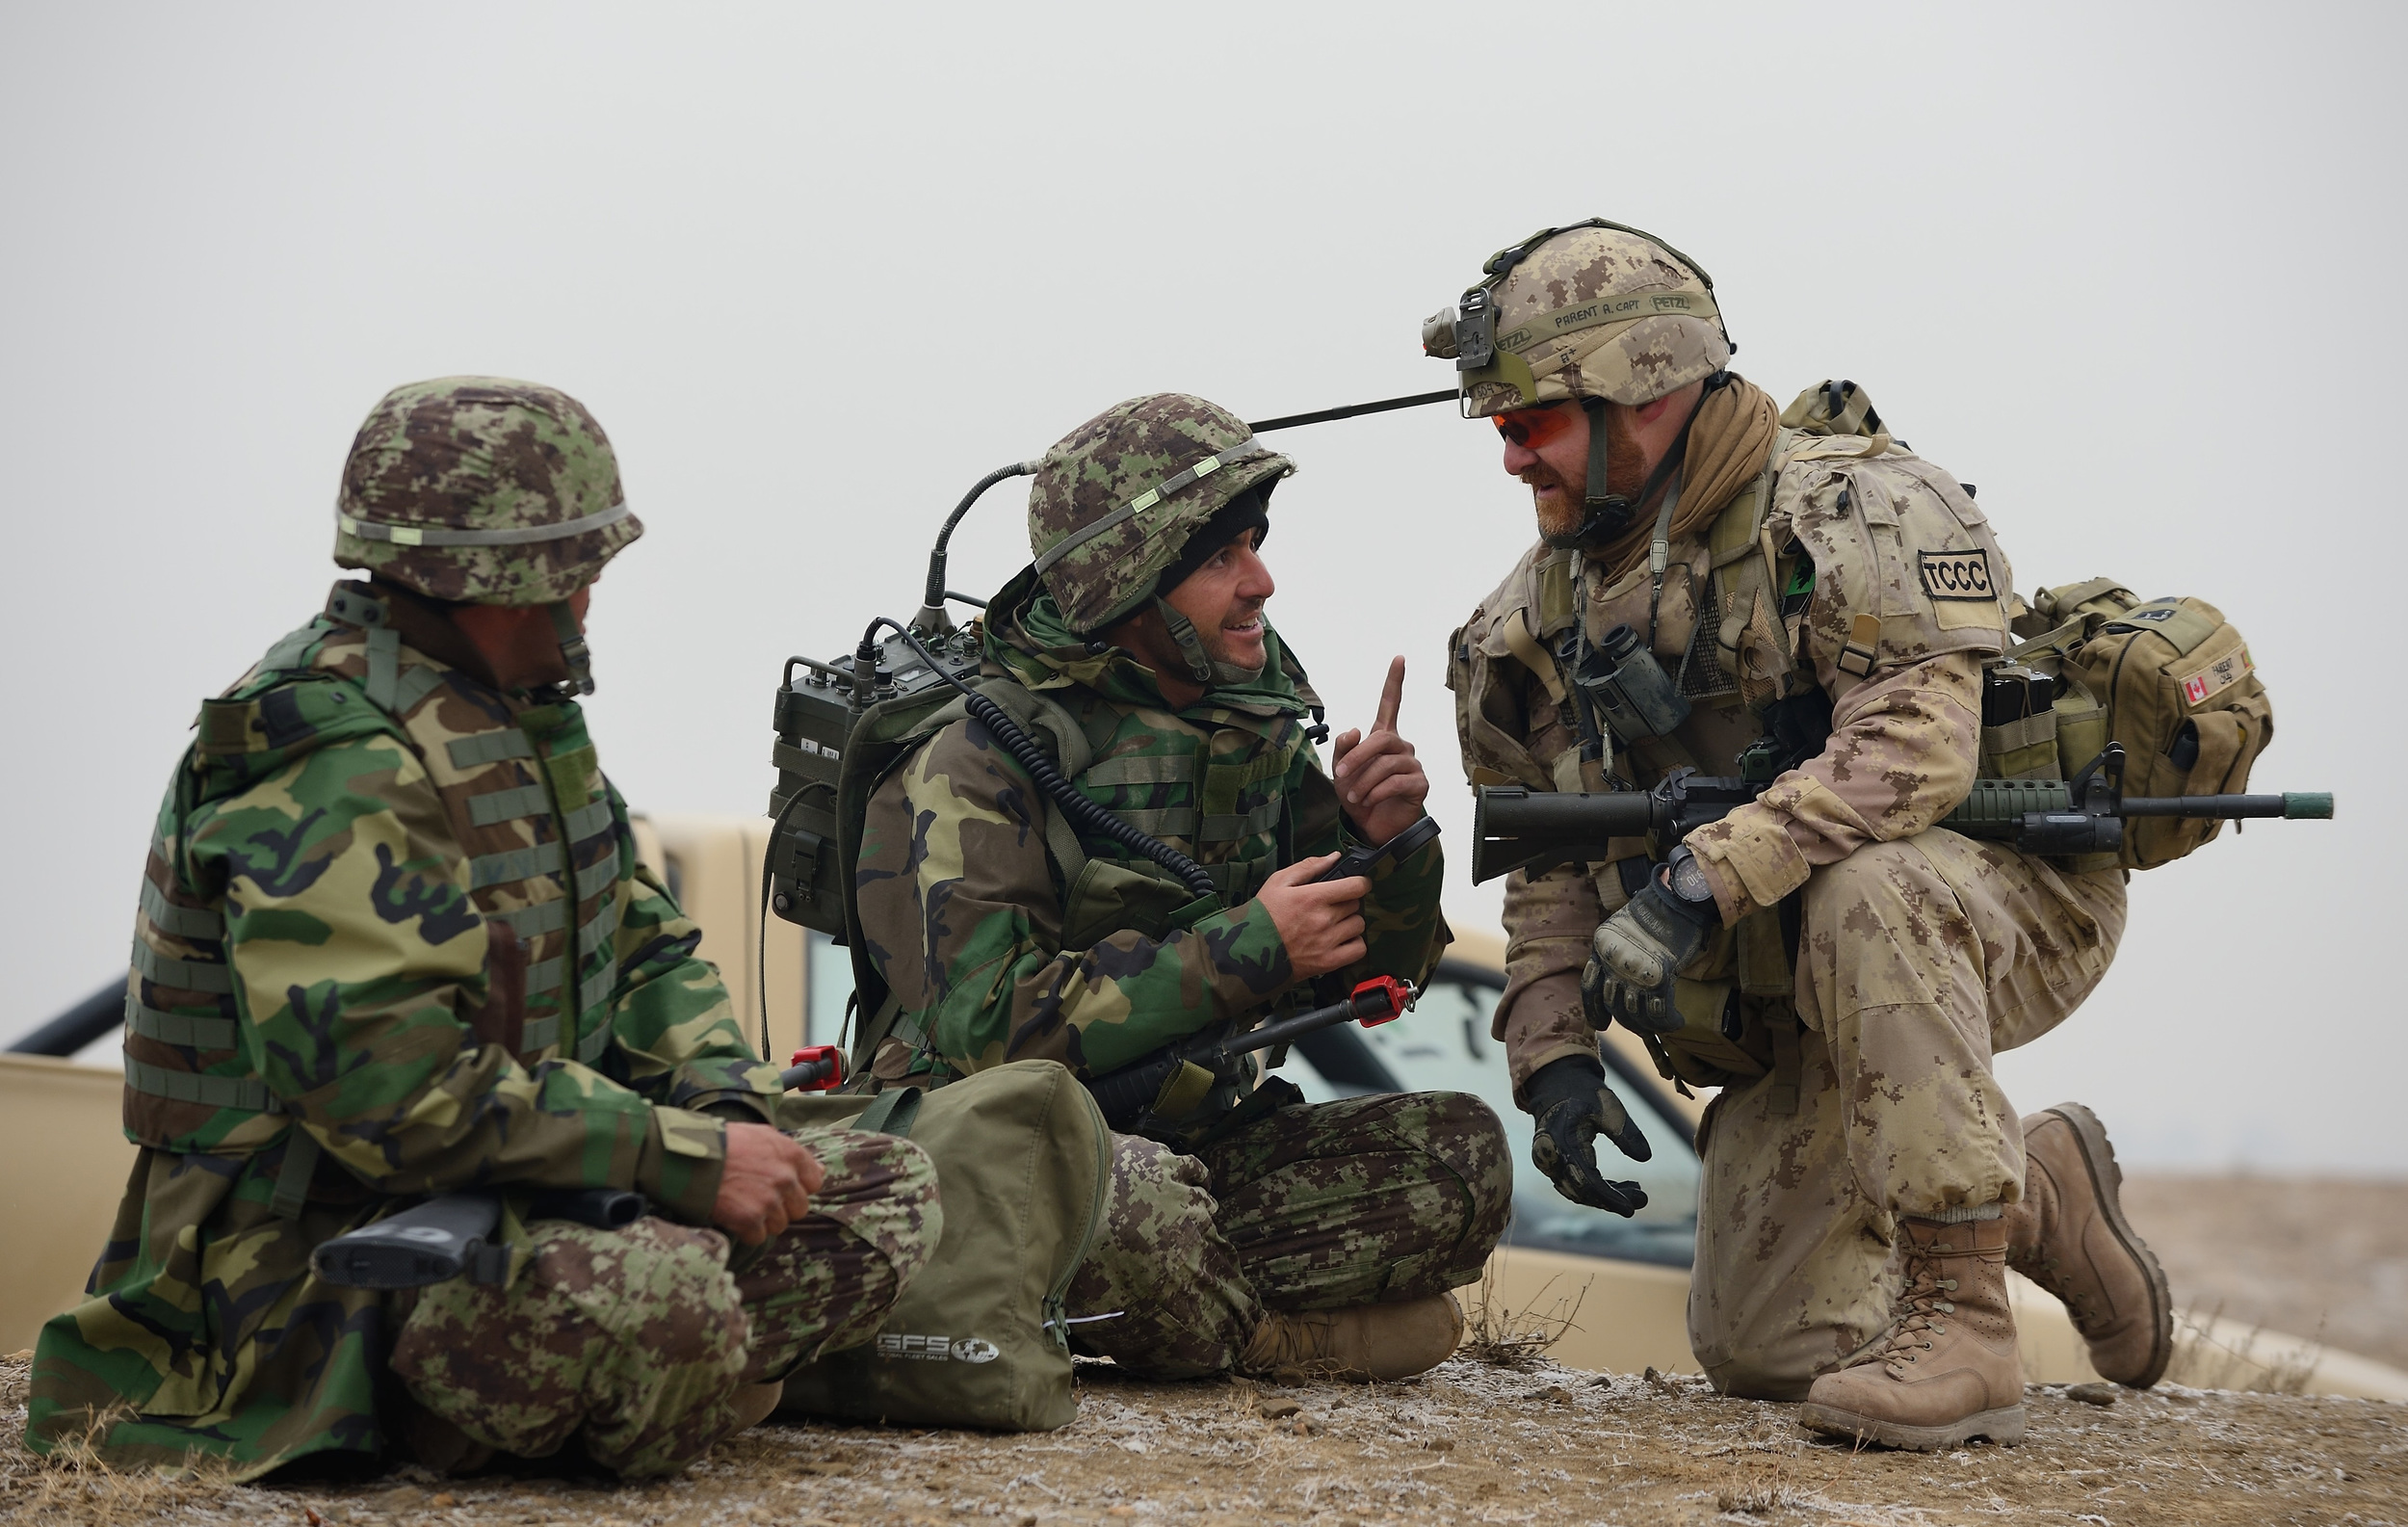 During the six years that Canadian soldiers were deployed on their combat mission in Kandahar, numerous offensive operations were mounted against the Taliban.